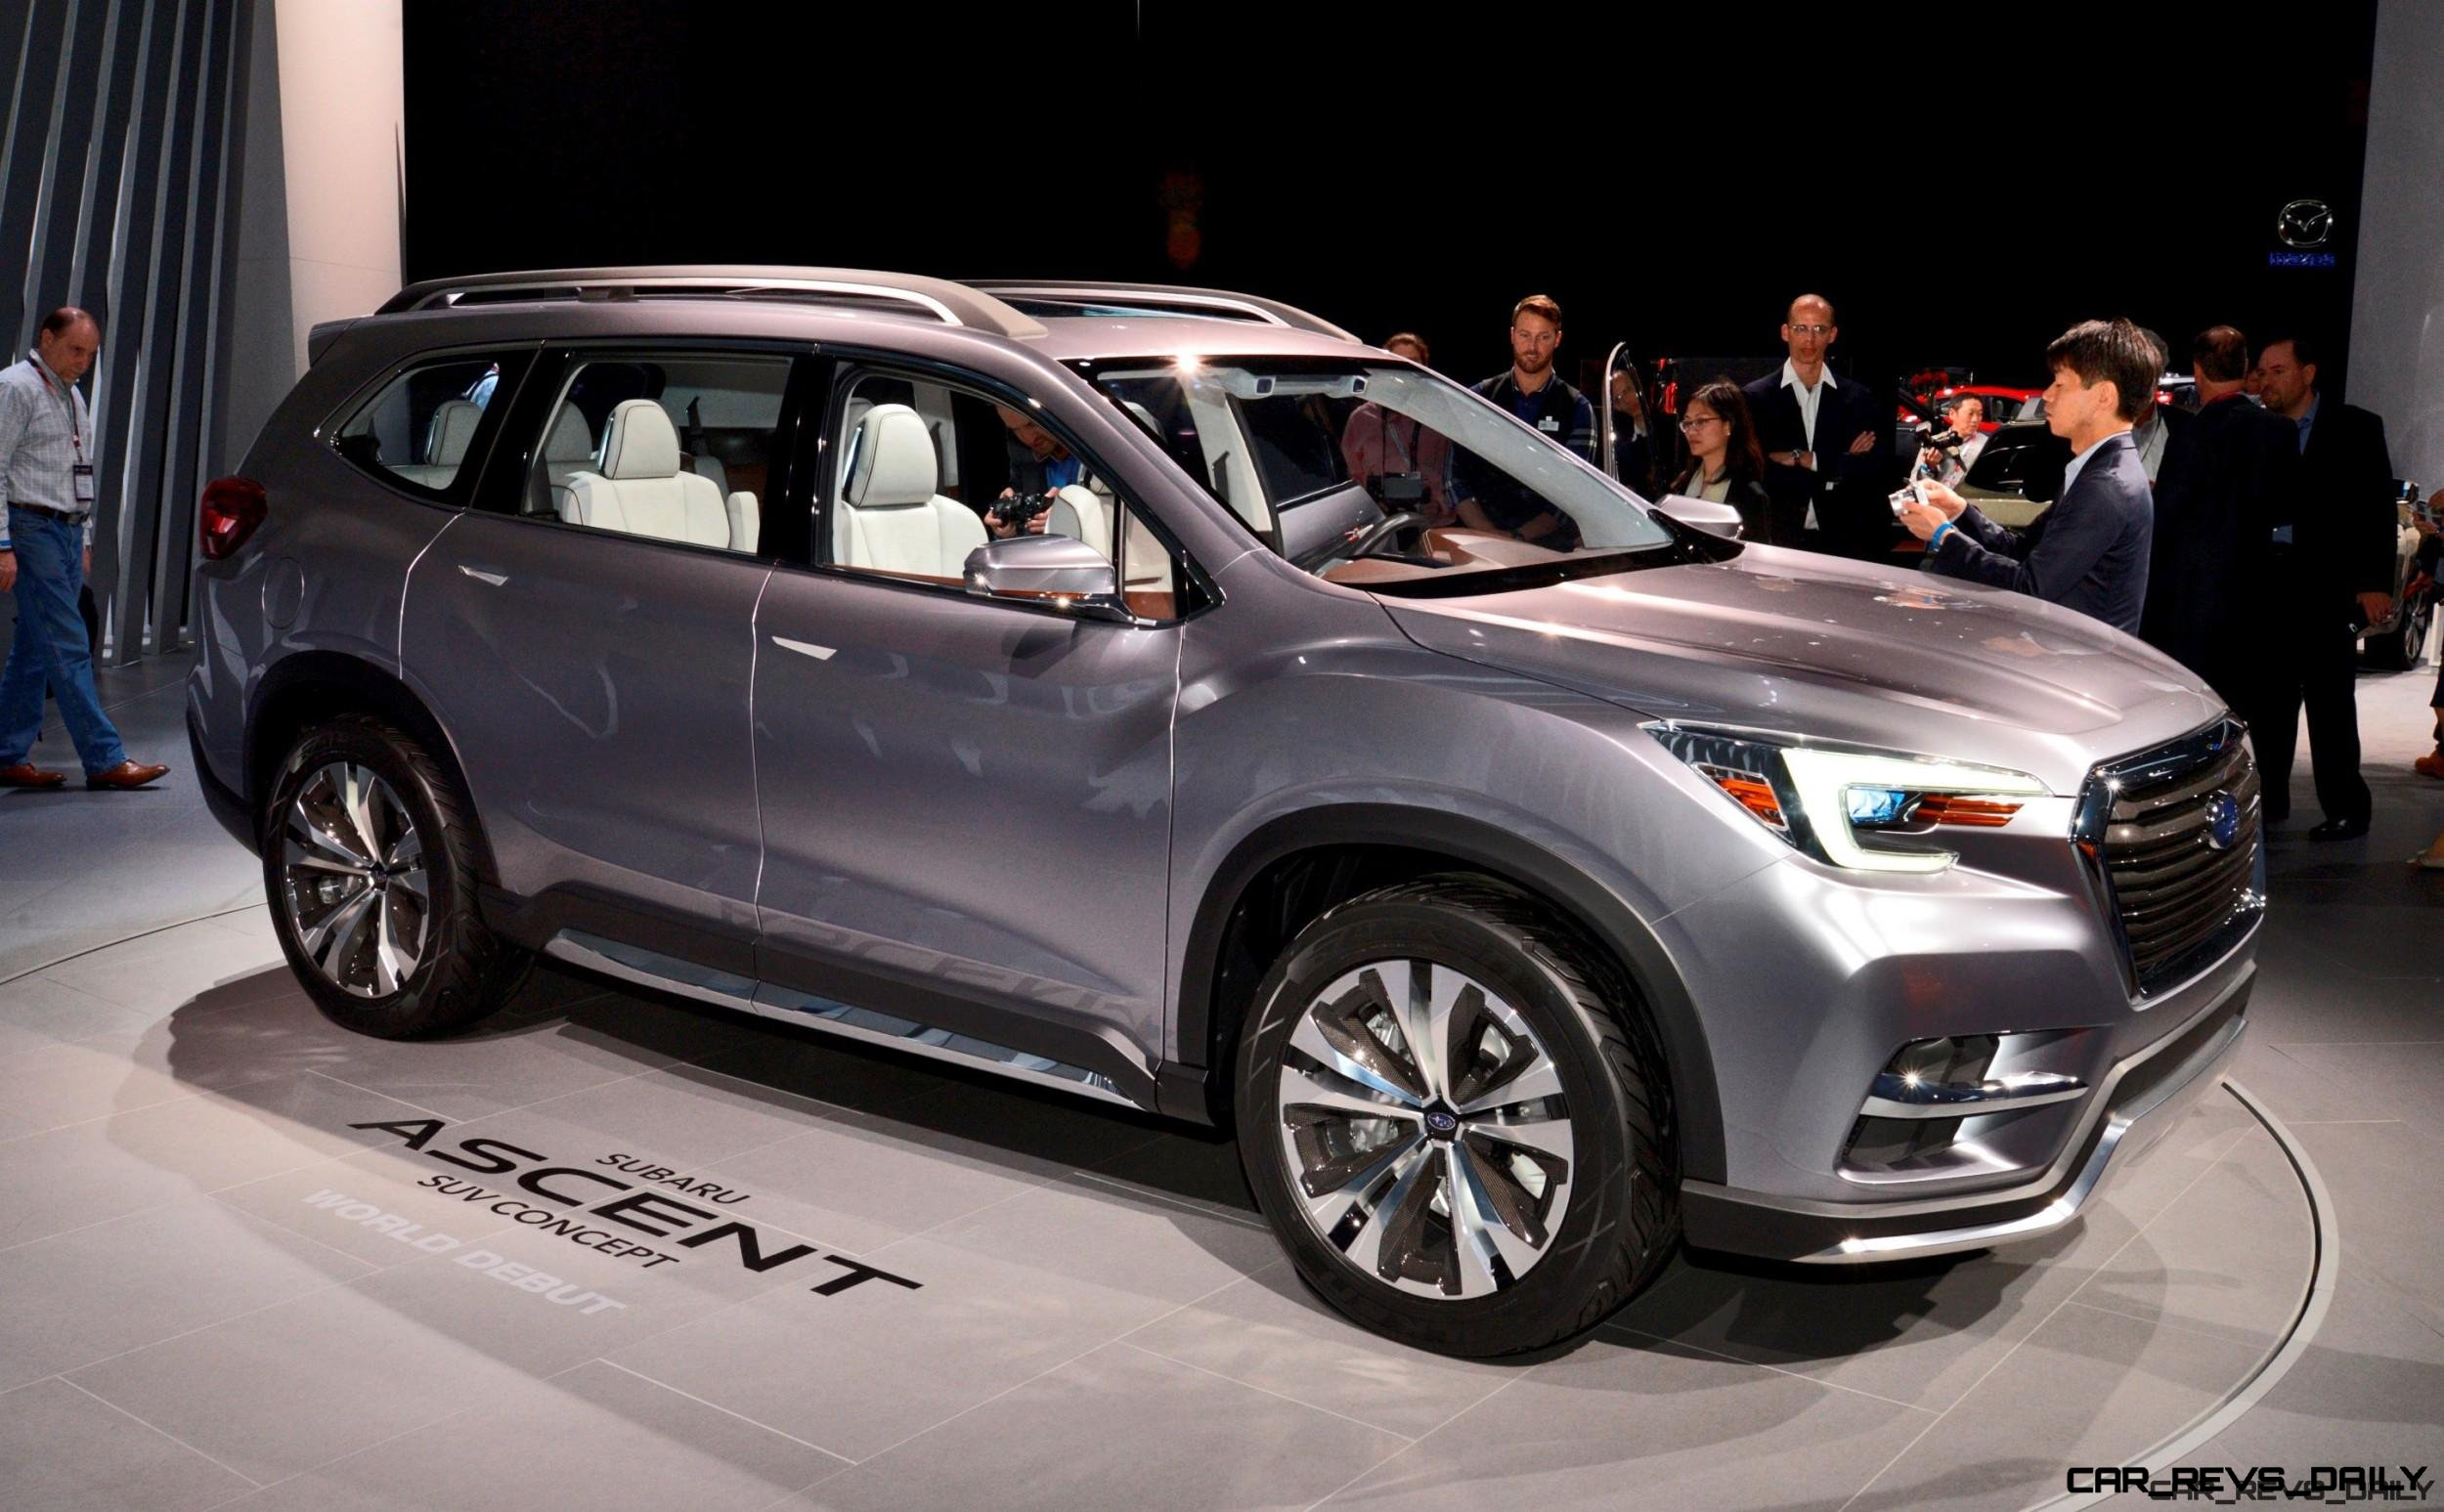 7 Seater Suv 2017 >> 2017 Subaru Ascent Concept Is Jumbo 7 Seater Outback Headed To